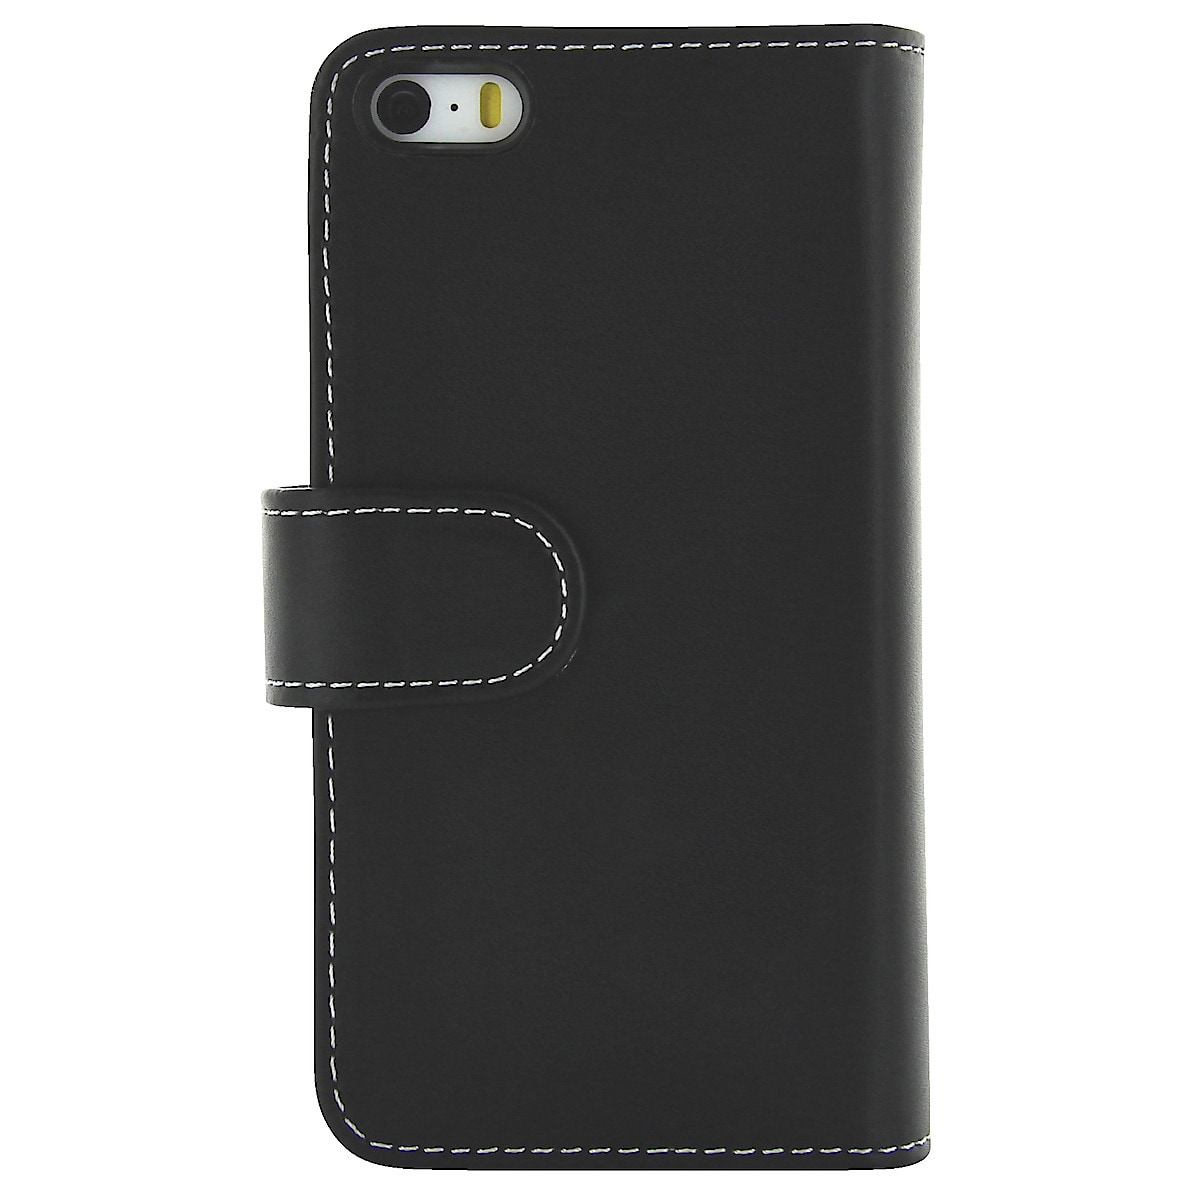 Holdit Wallet Case for iPhone 5/5S/SE